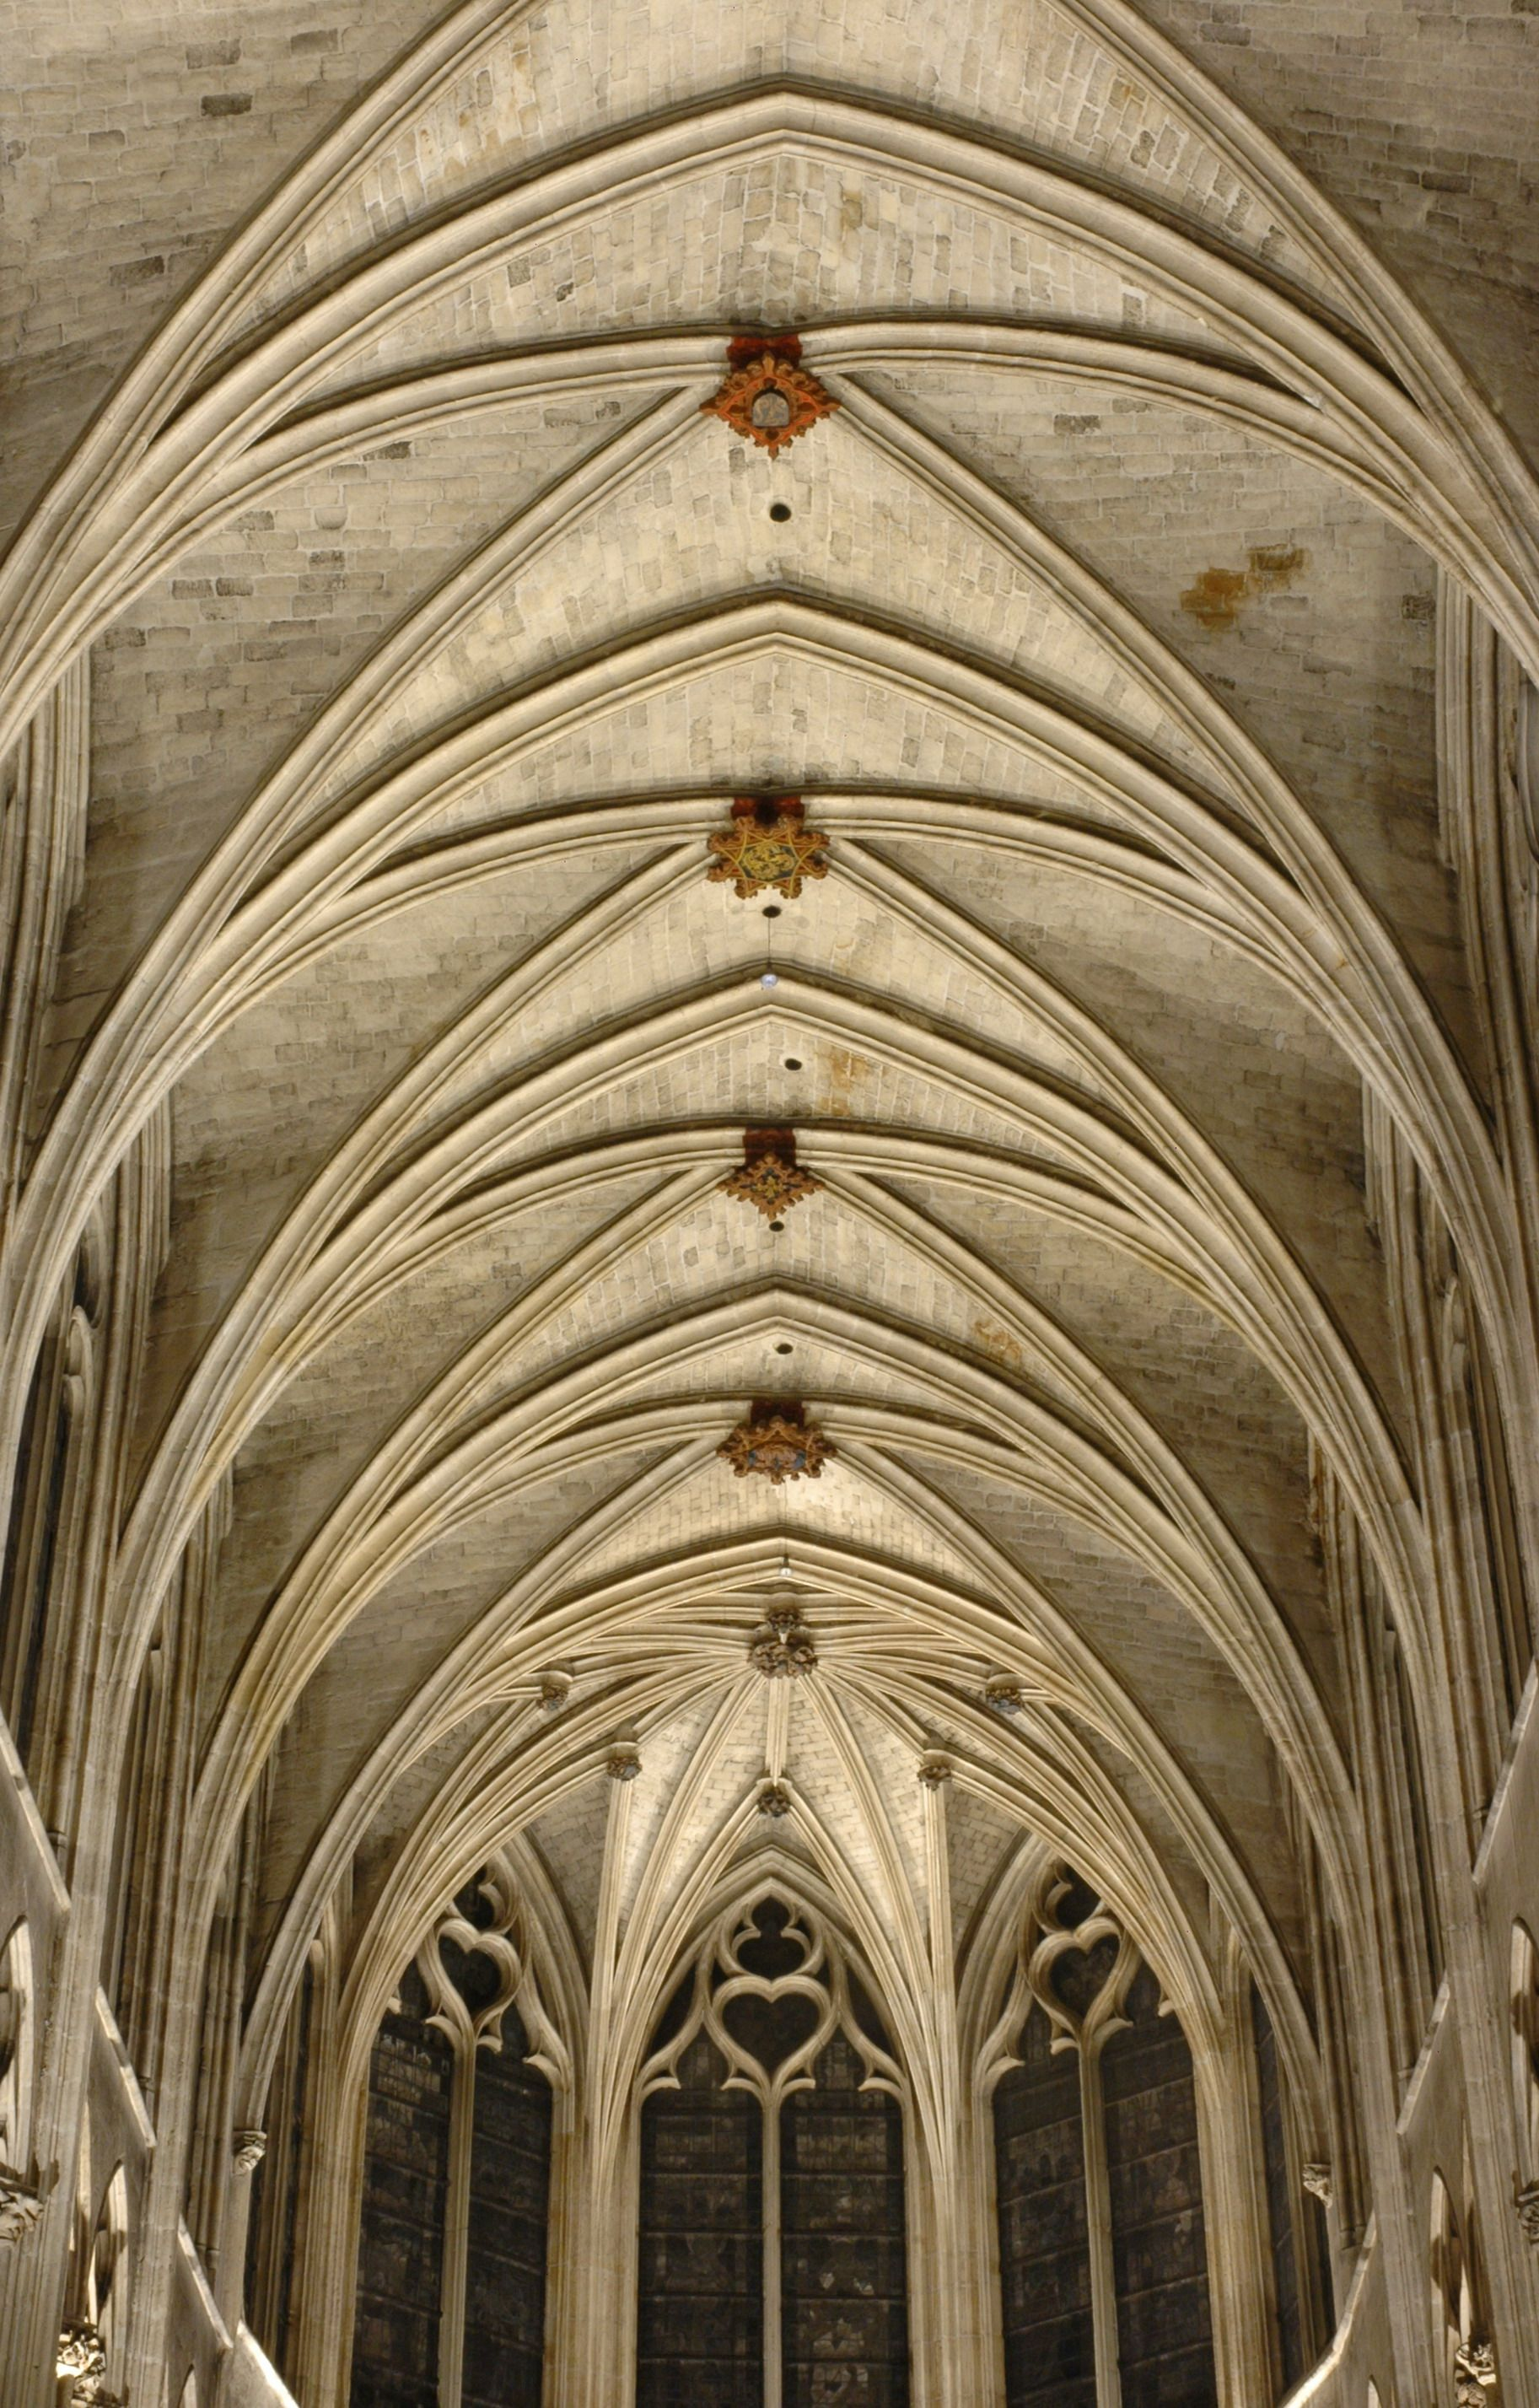 gothic rib vault ceiling of the saint s verin church in paris architecture vaults arches. Black Bedroom Furniture Sets. Home Design Ideas